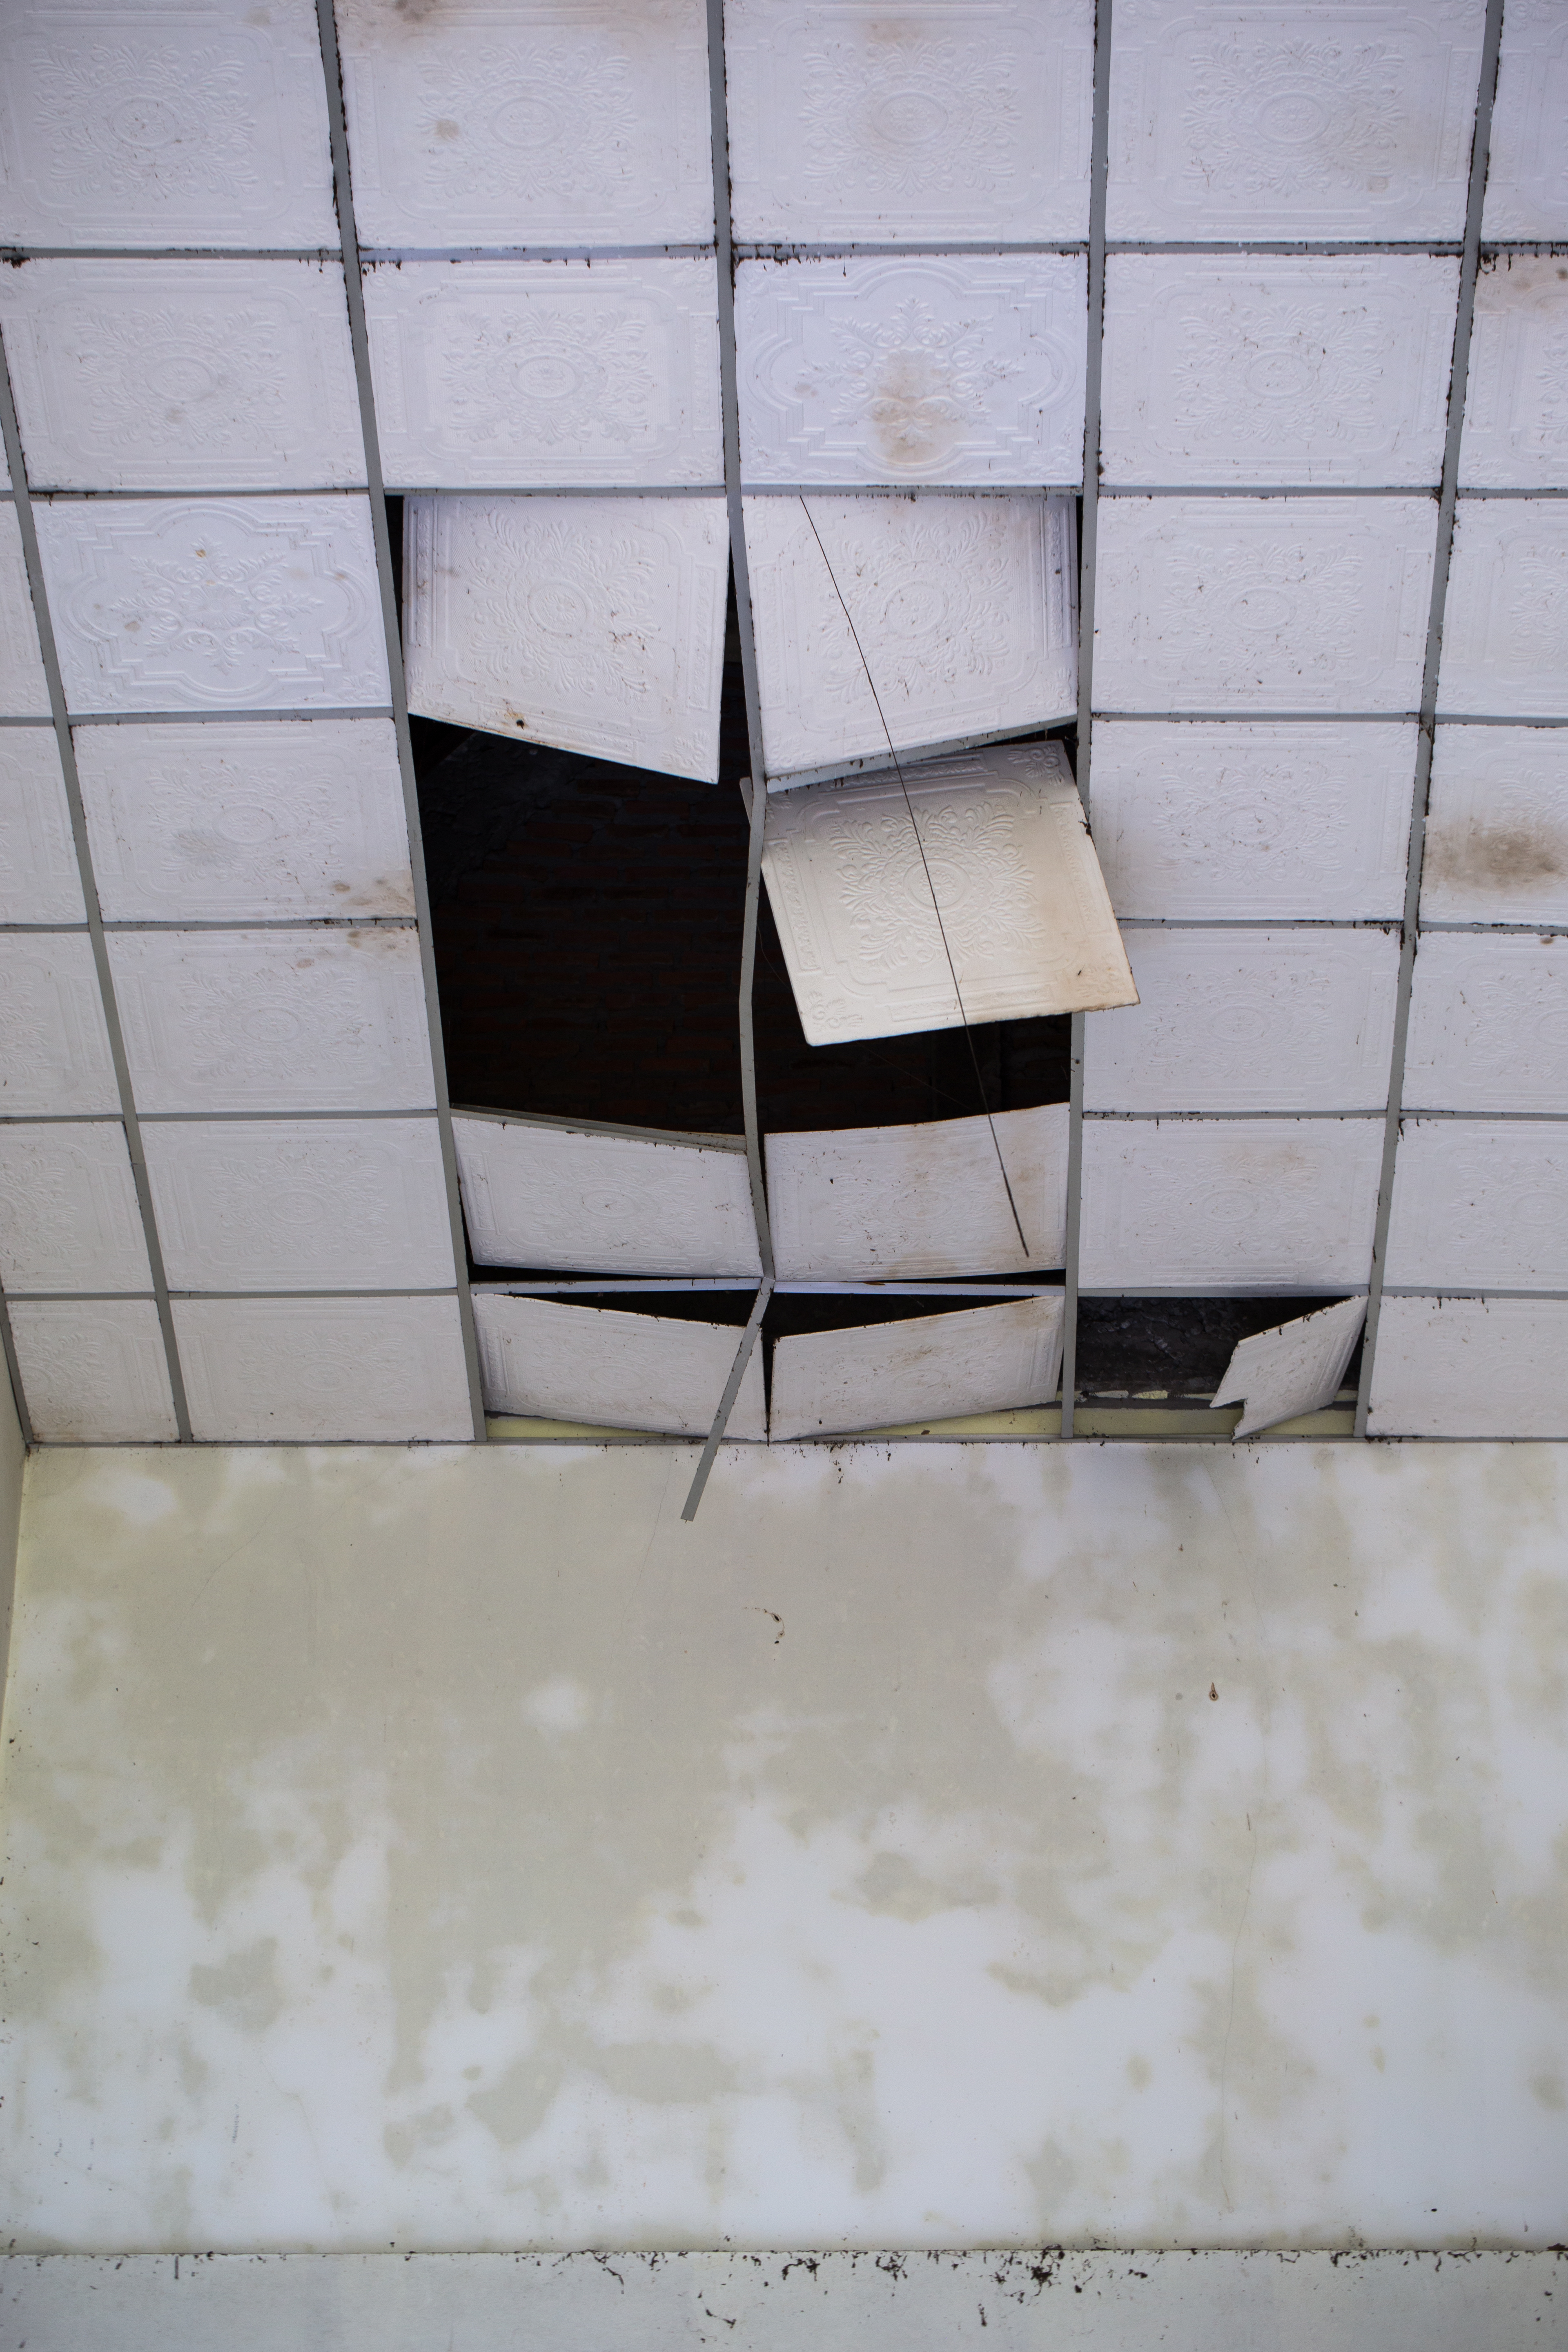 Home ceiling panels damaged by storm winds